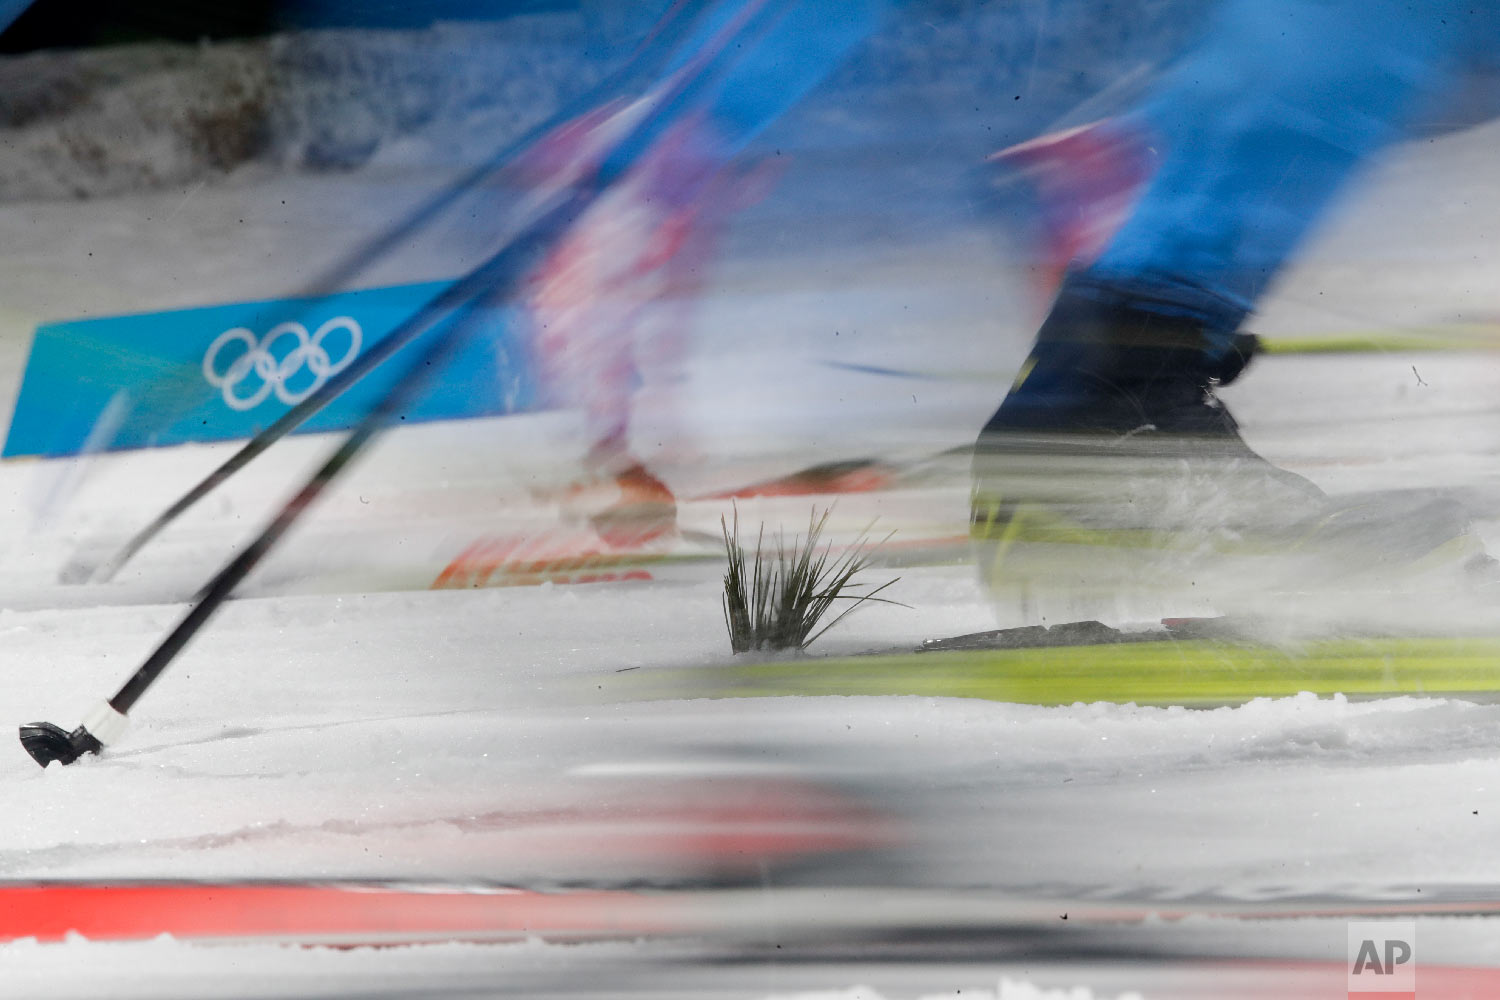 Racers compete competes during the men's cross-country skiing sprint classic at the 2018 Winter Olympics in Pyeongchang, South Korea, Tuesday, Feb. 13, 2018. (AP Photo/Dmitri Lovetsky)